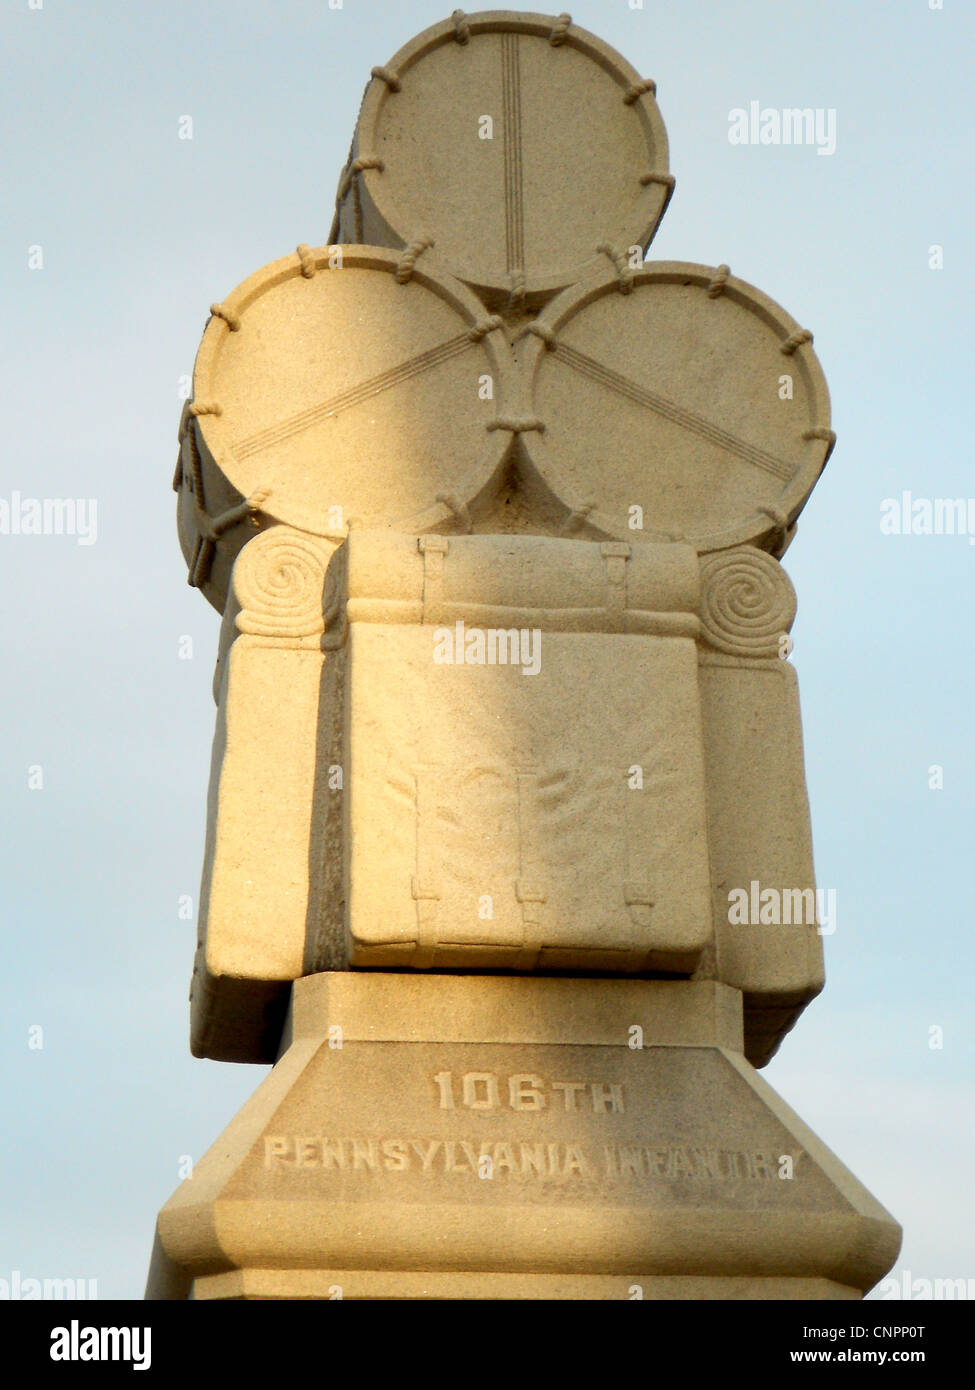 Monument on the Gettysburg (PA) battlefield to the 106th Pennsylvania Infantry. - Stock Image